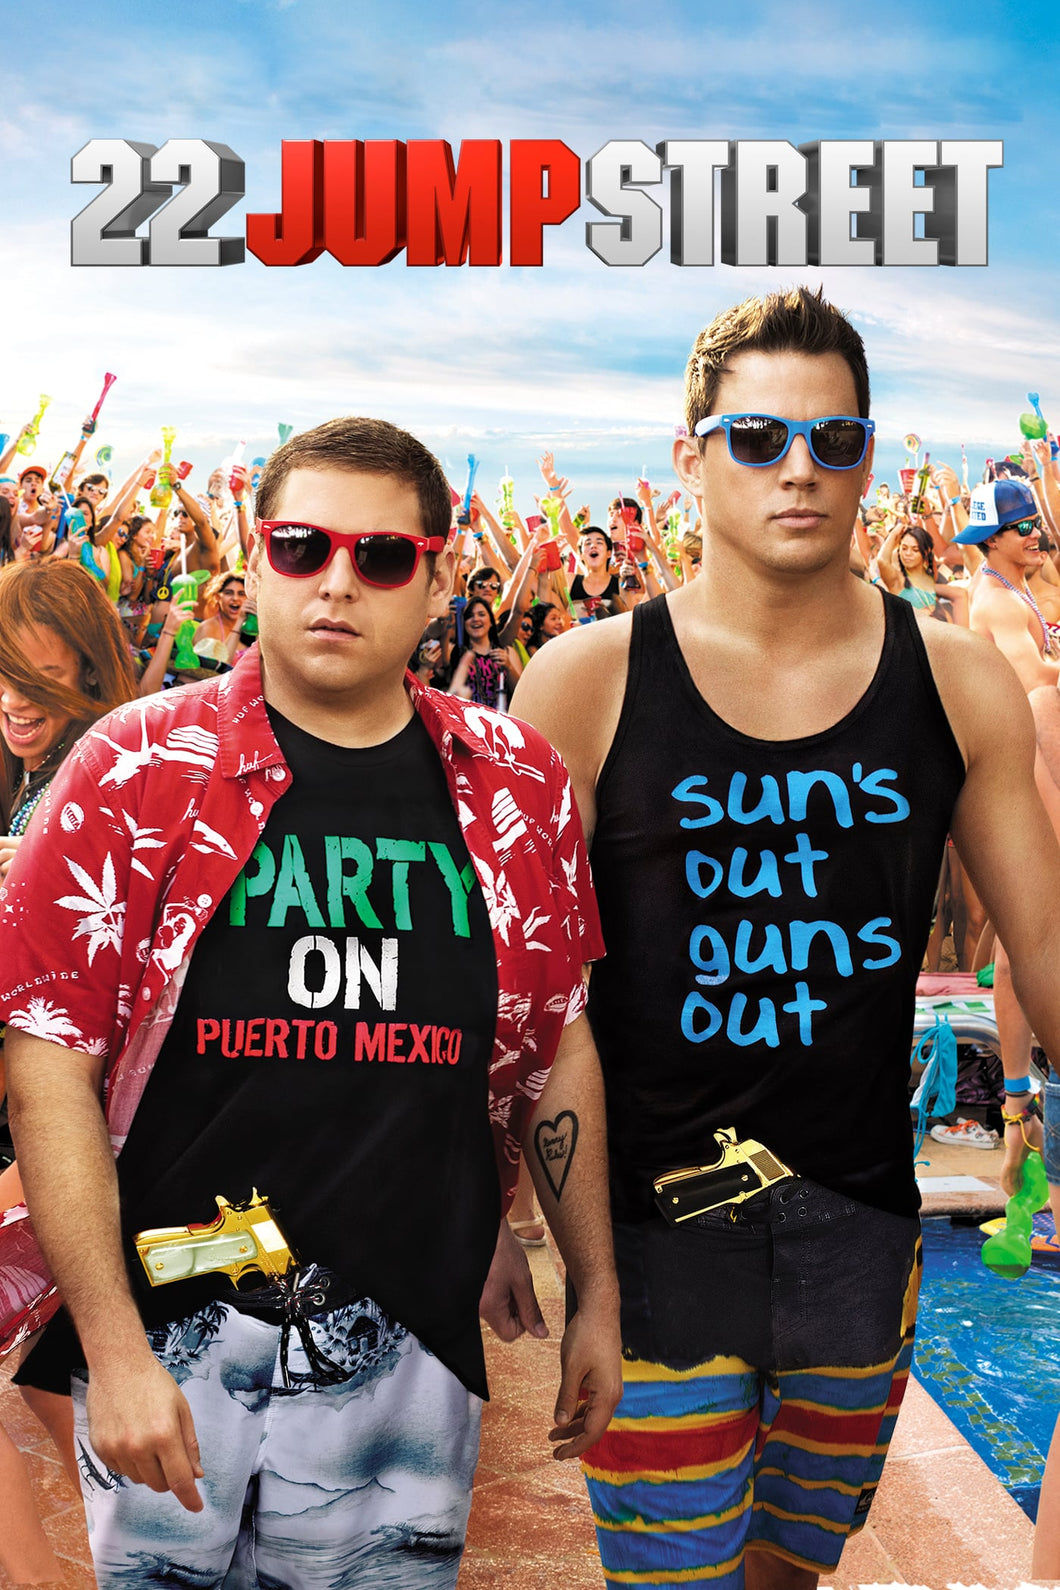 22 Jumpstreet (SD Vudu/iTunes Via MA Redeem)